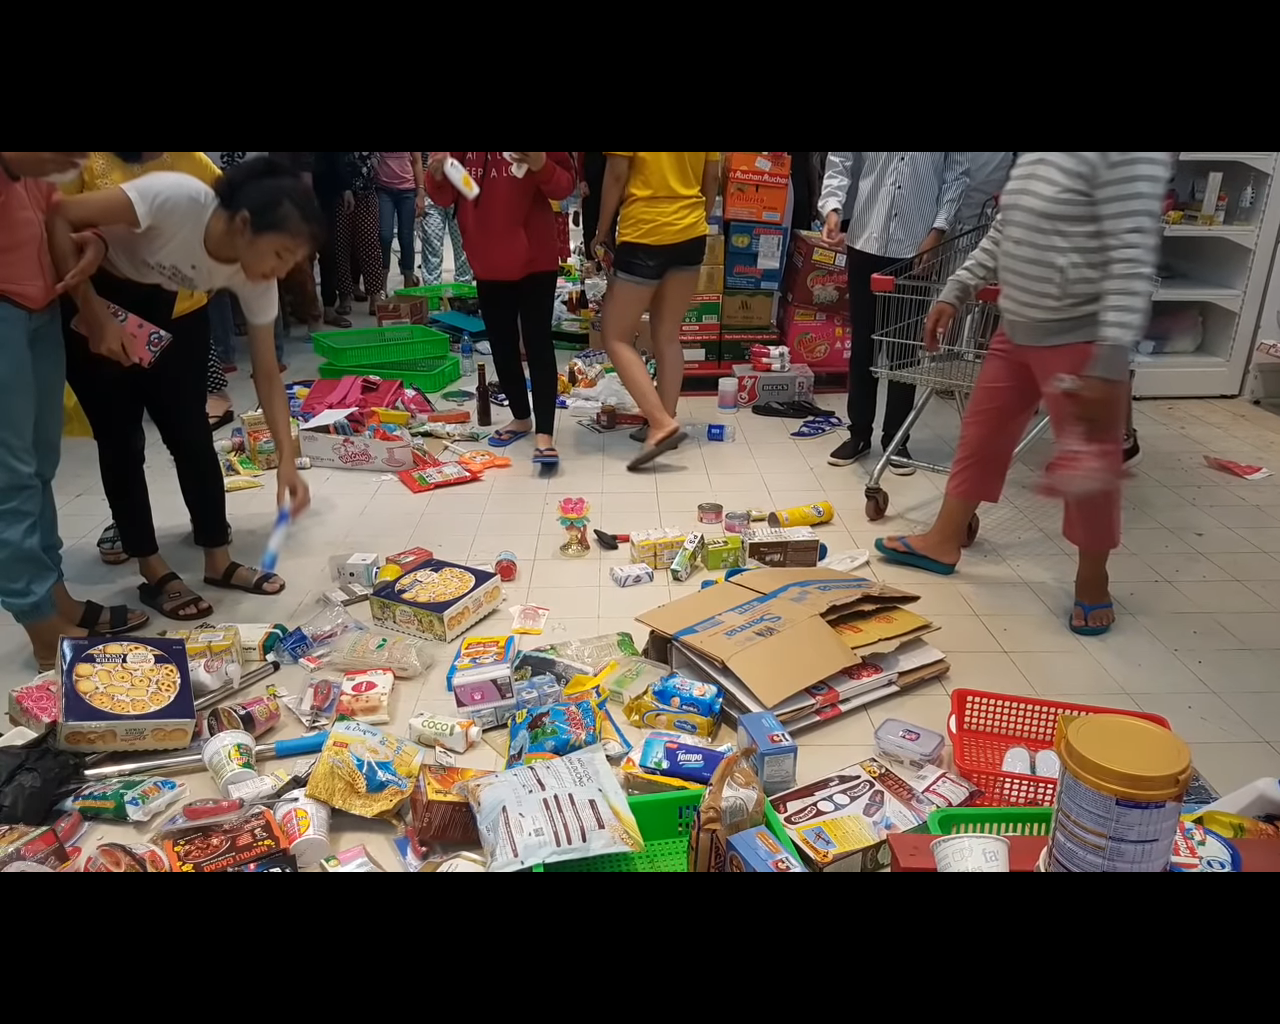 Goods are left on the floor at an Auchan supermarket in the southern province of Tay Ninh on May 21, 2019 in this screenshot.